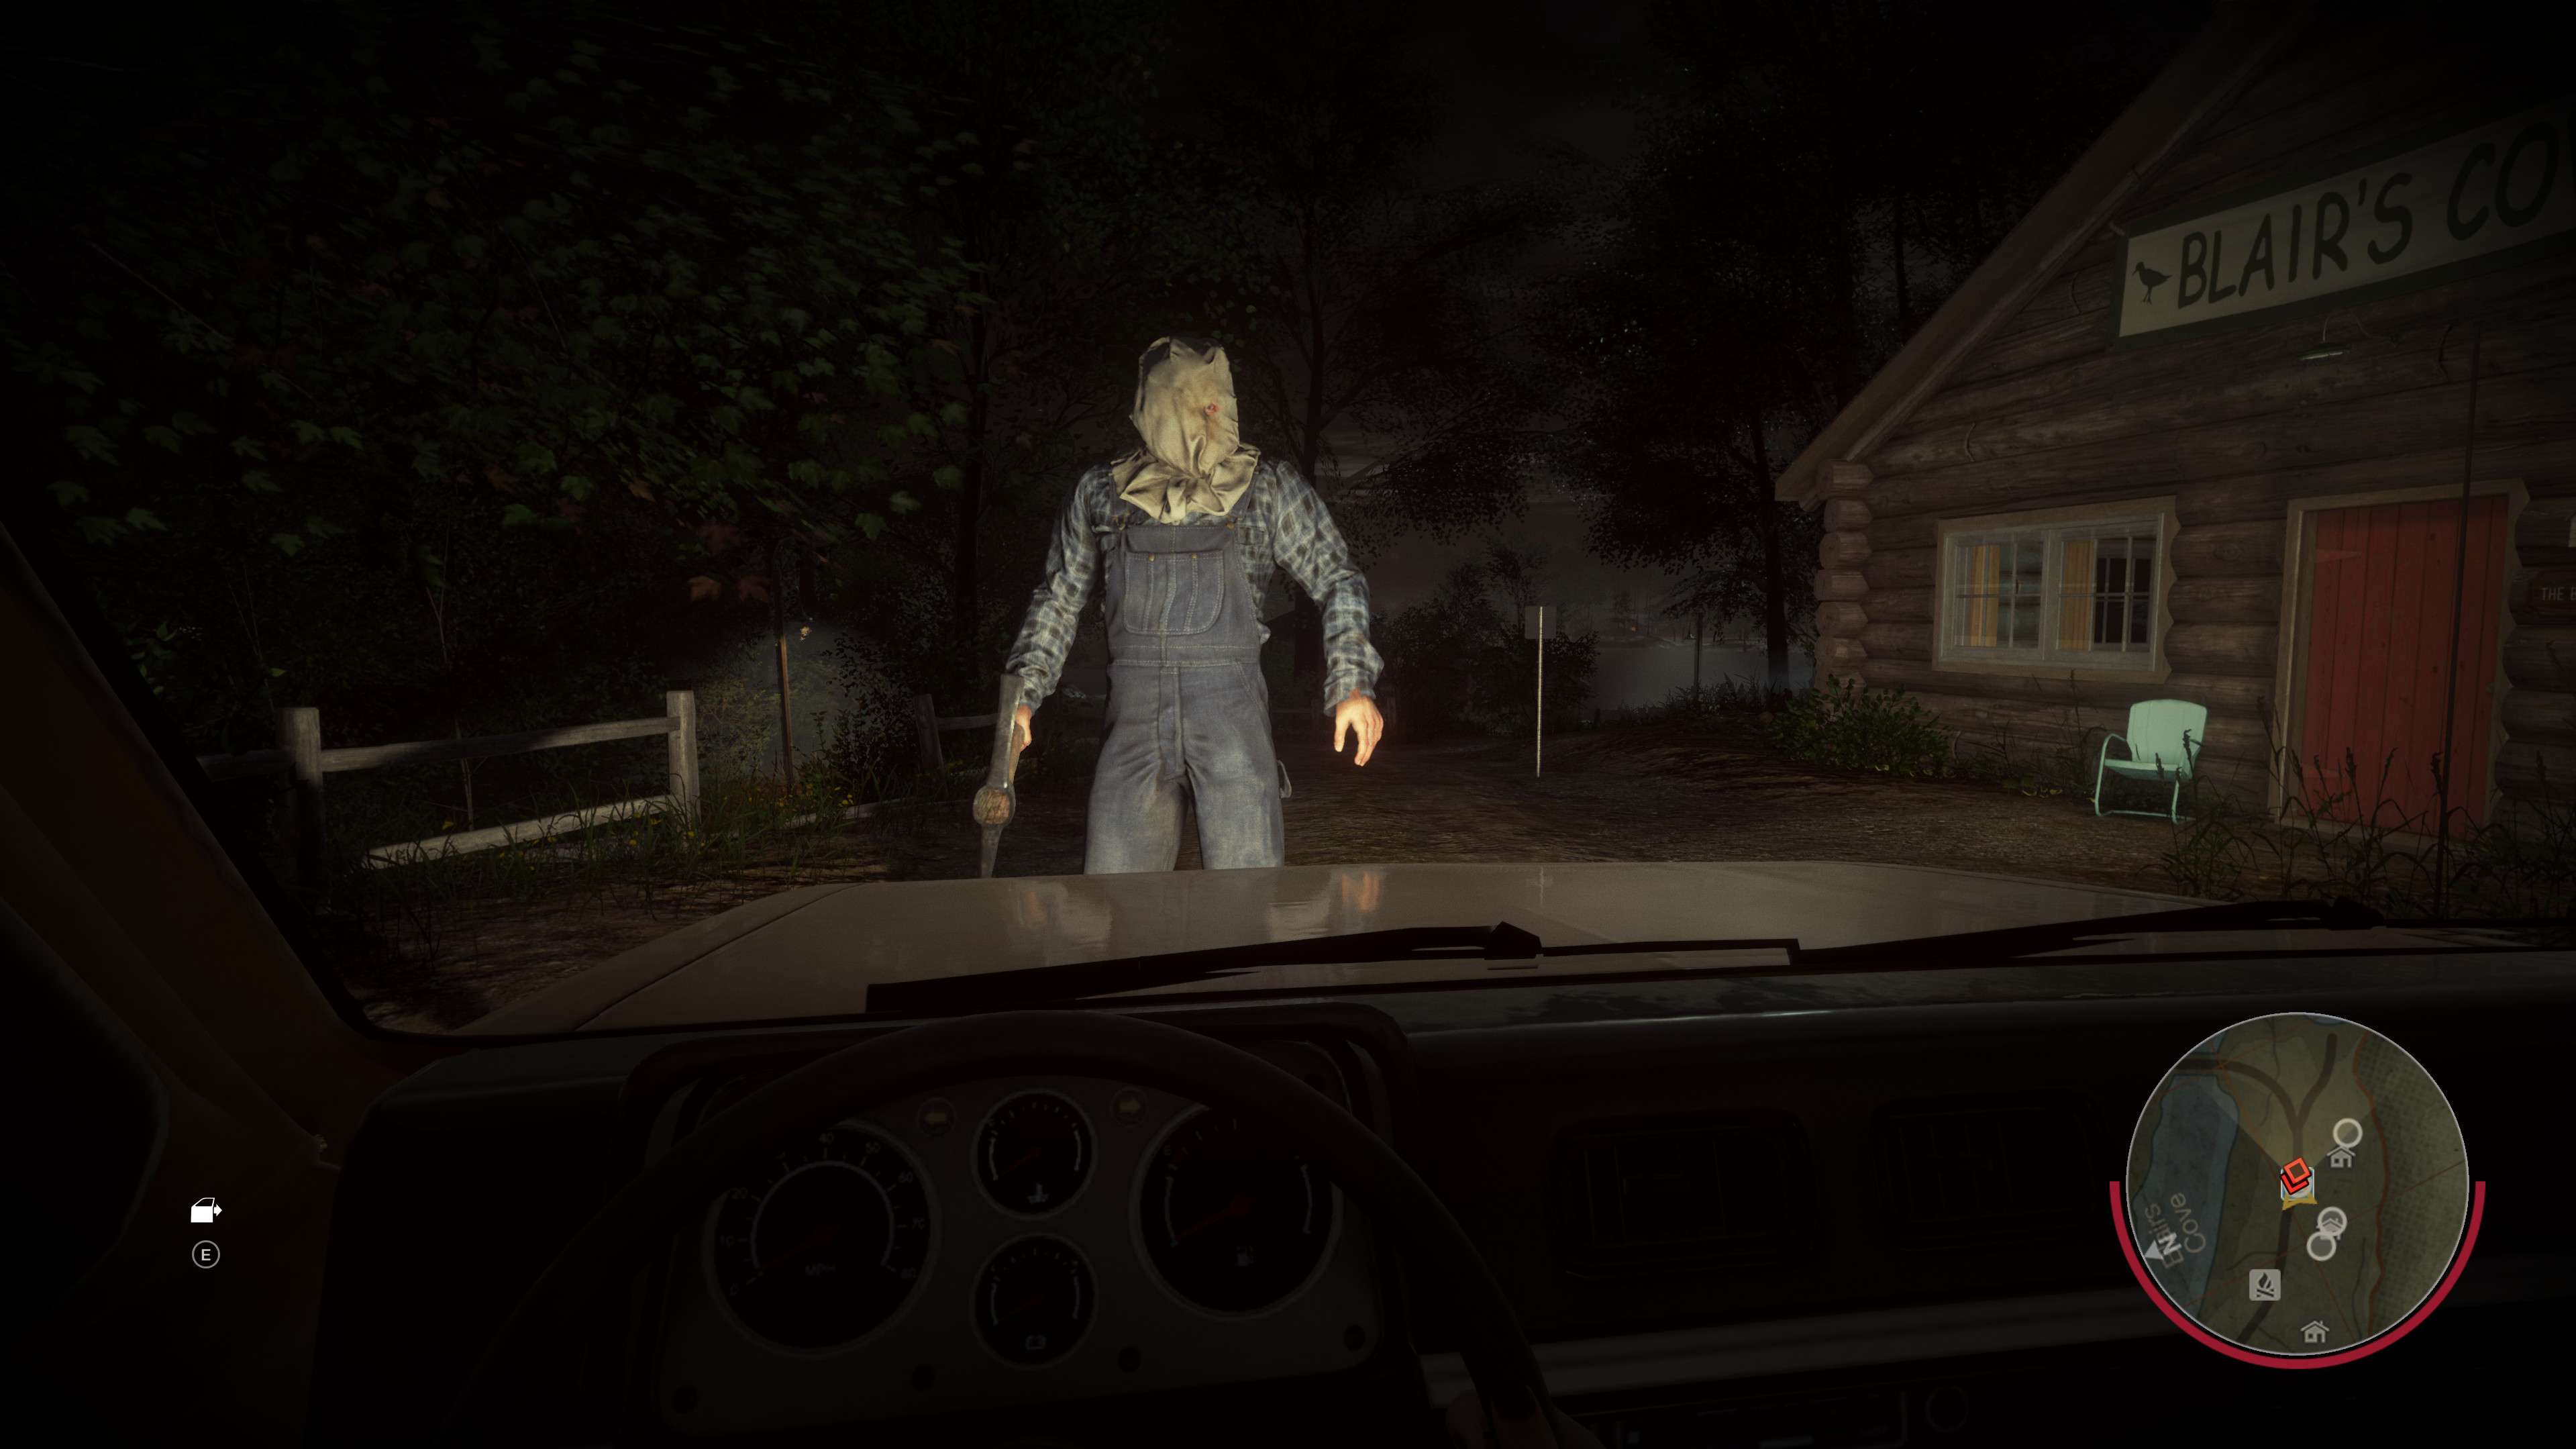 friday the 13th the game how to kill jason voorhees